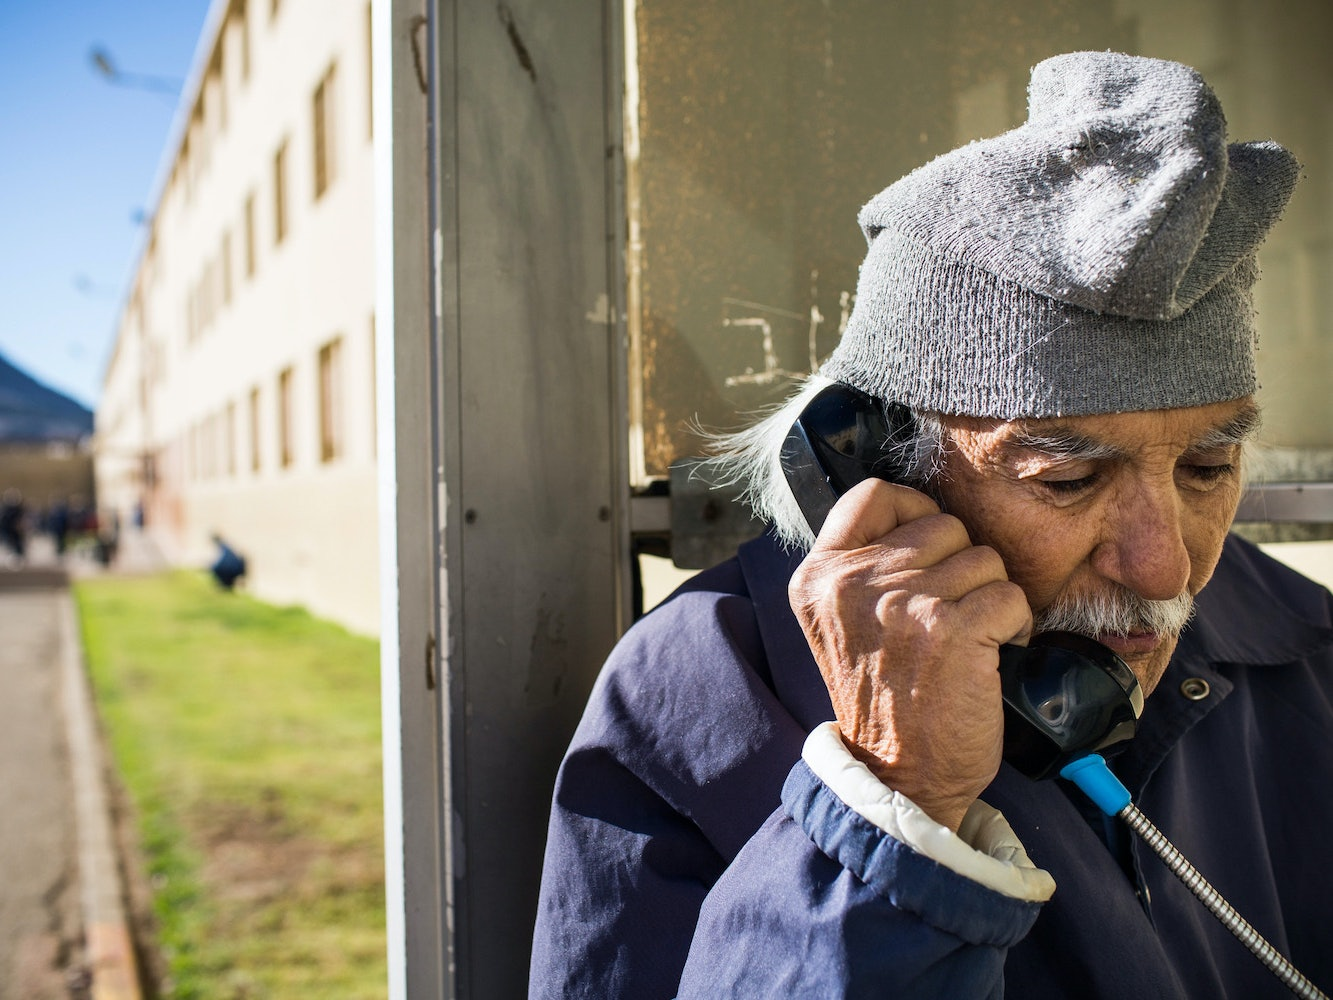 Prison Phone Company Securus Denies Violating Inmate Rights With Call Recordings